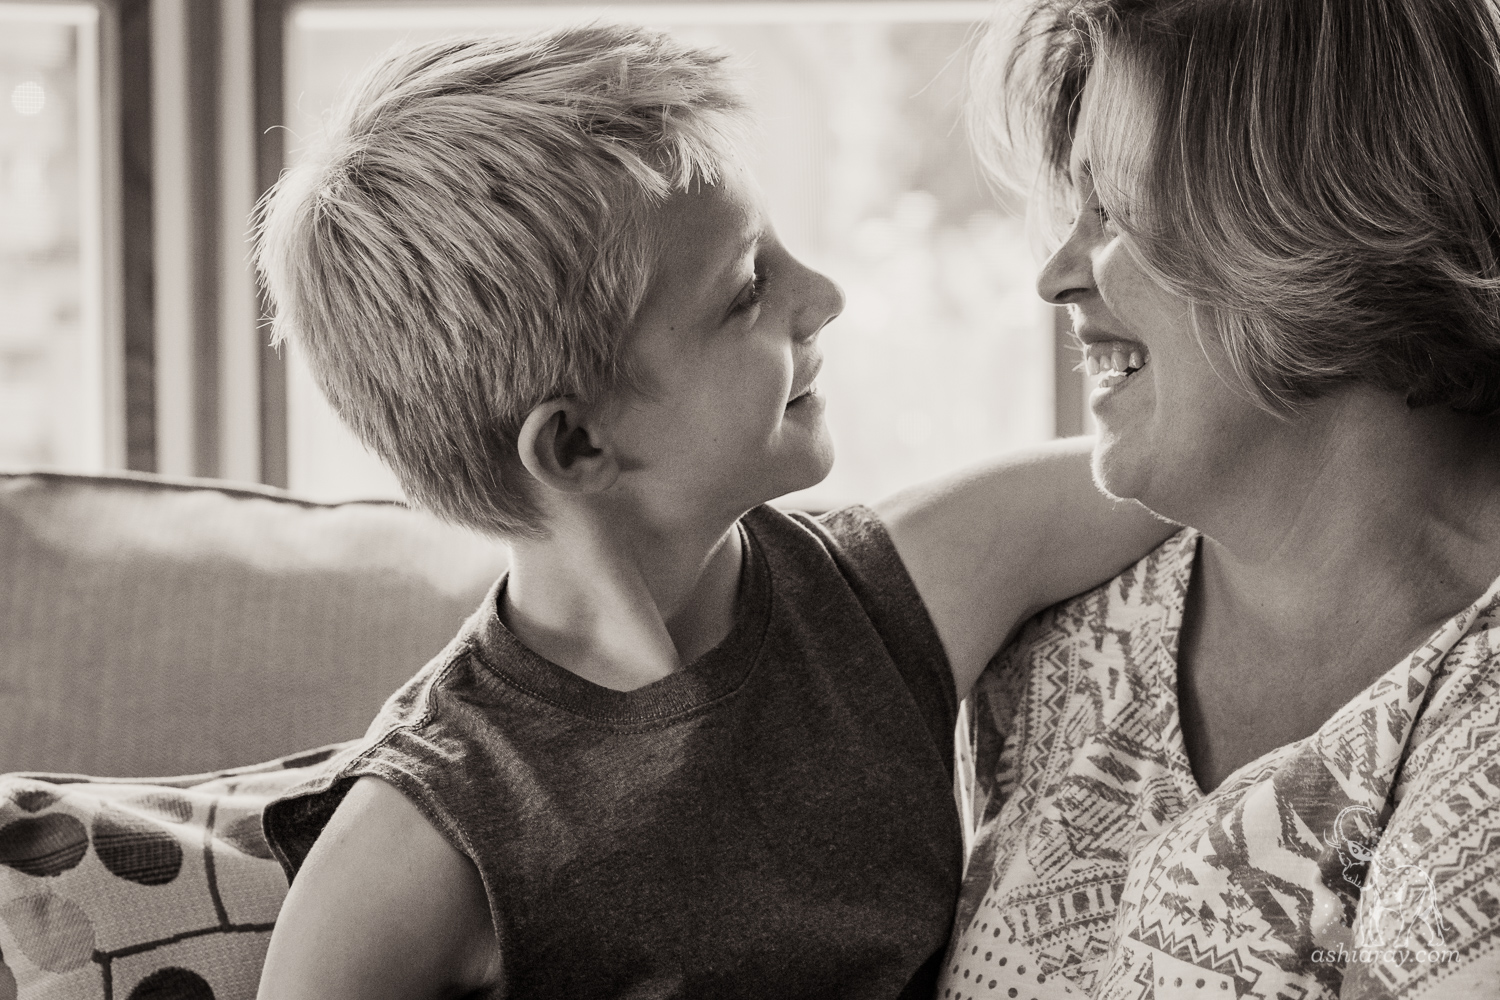 Head & shoulders portrait of son and mother smiling at each other